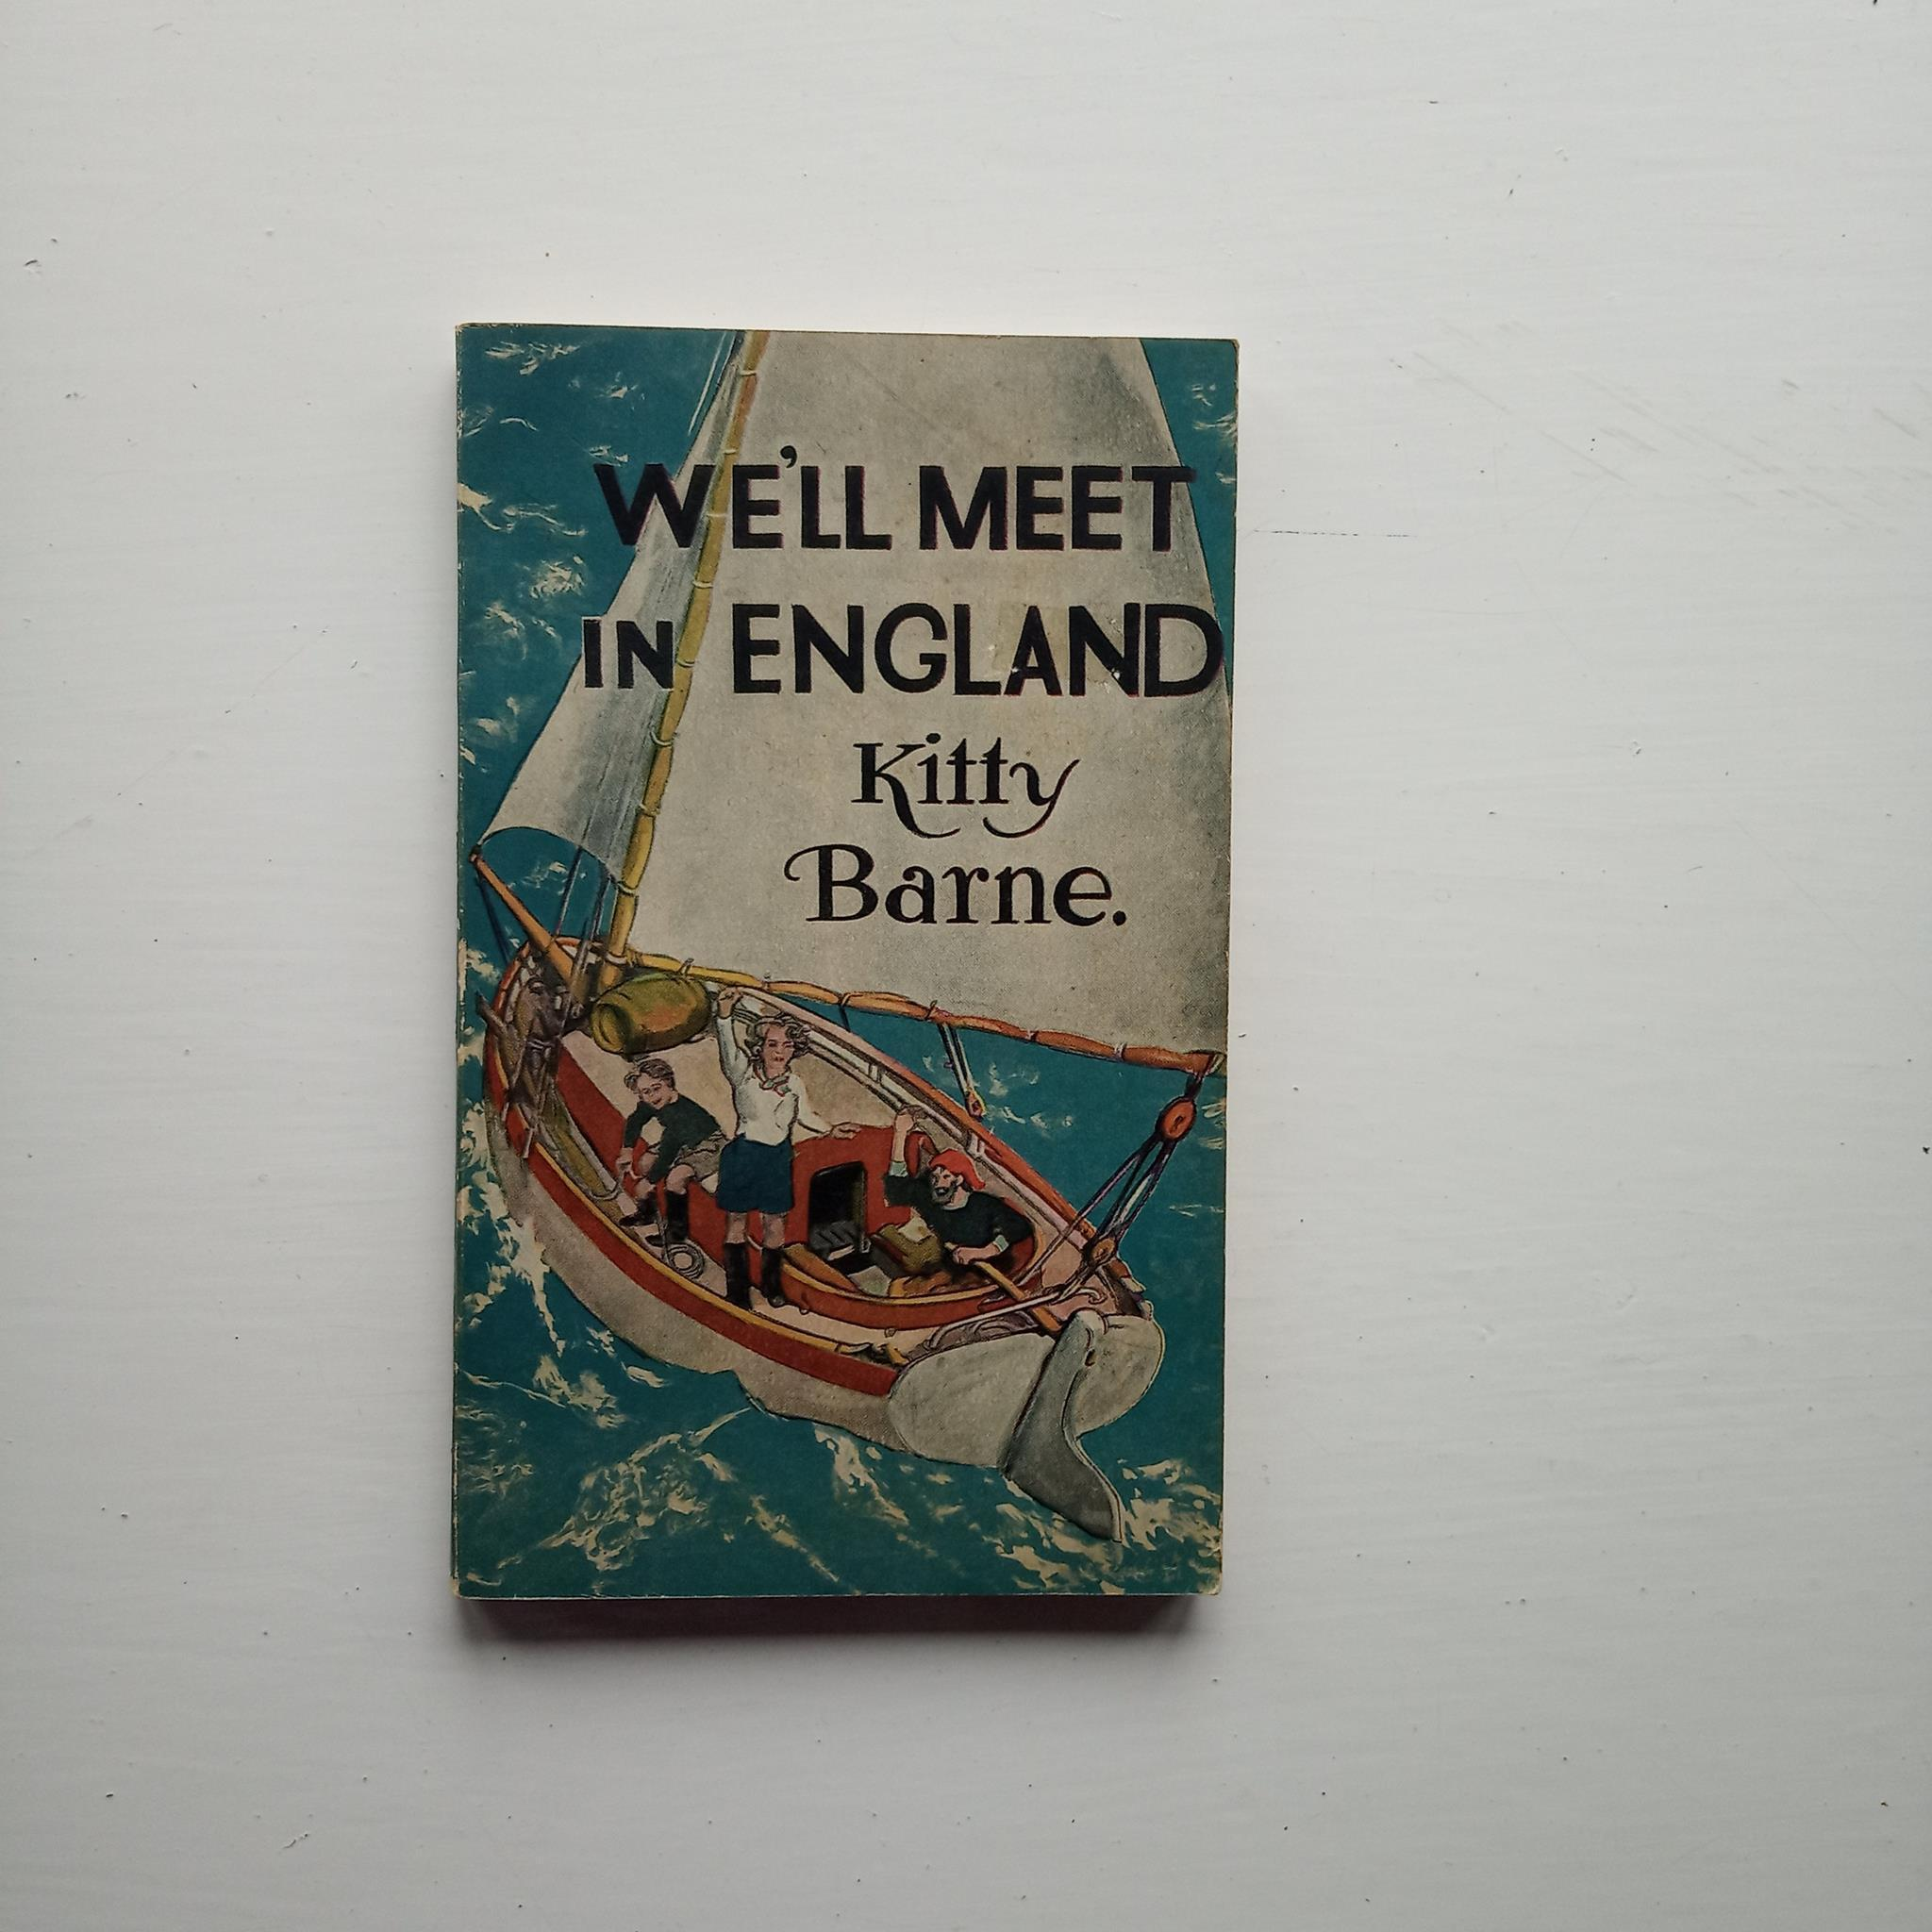 We'll Meet in England by Kitty Barne